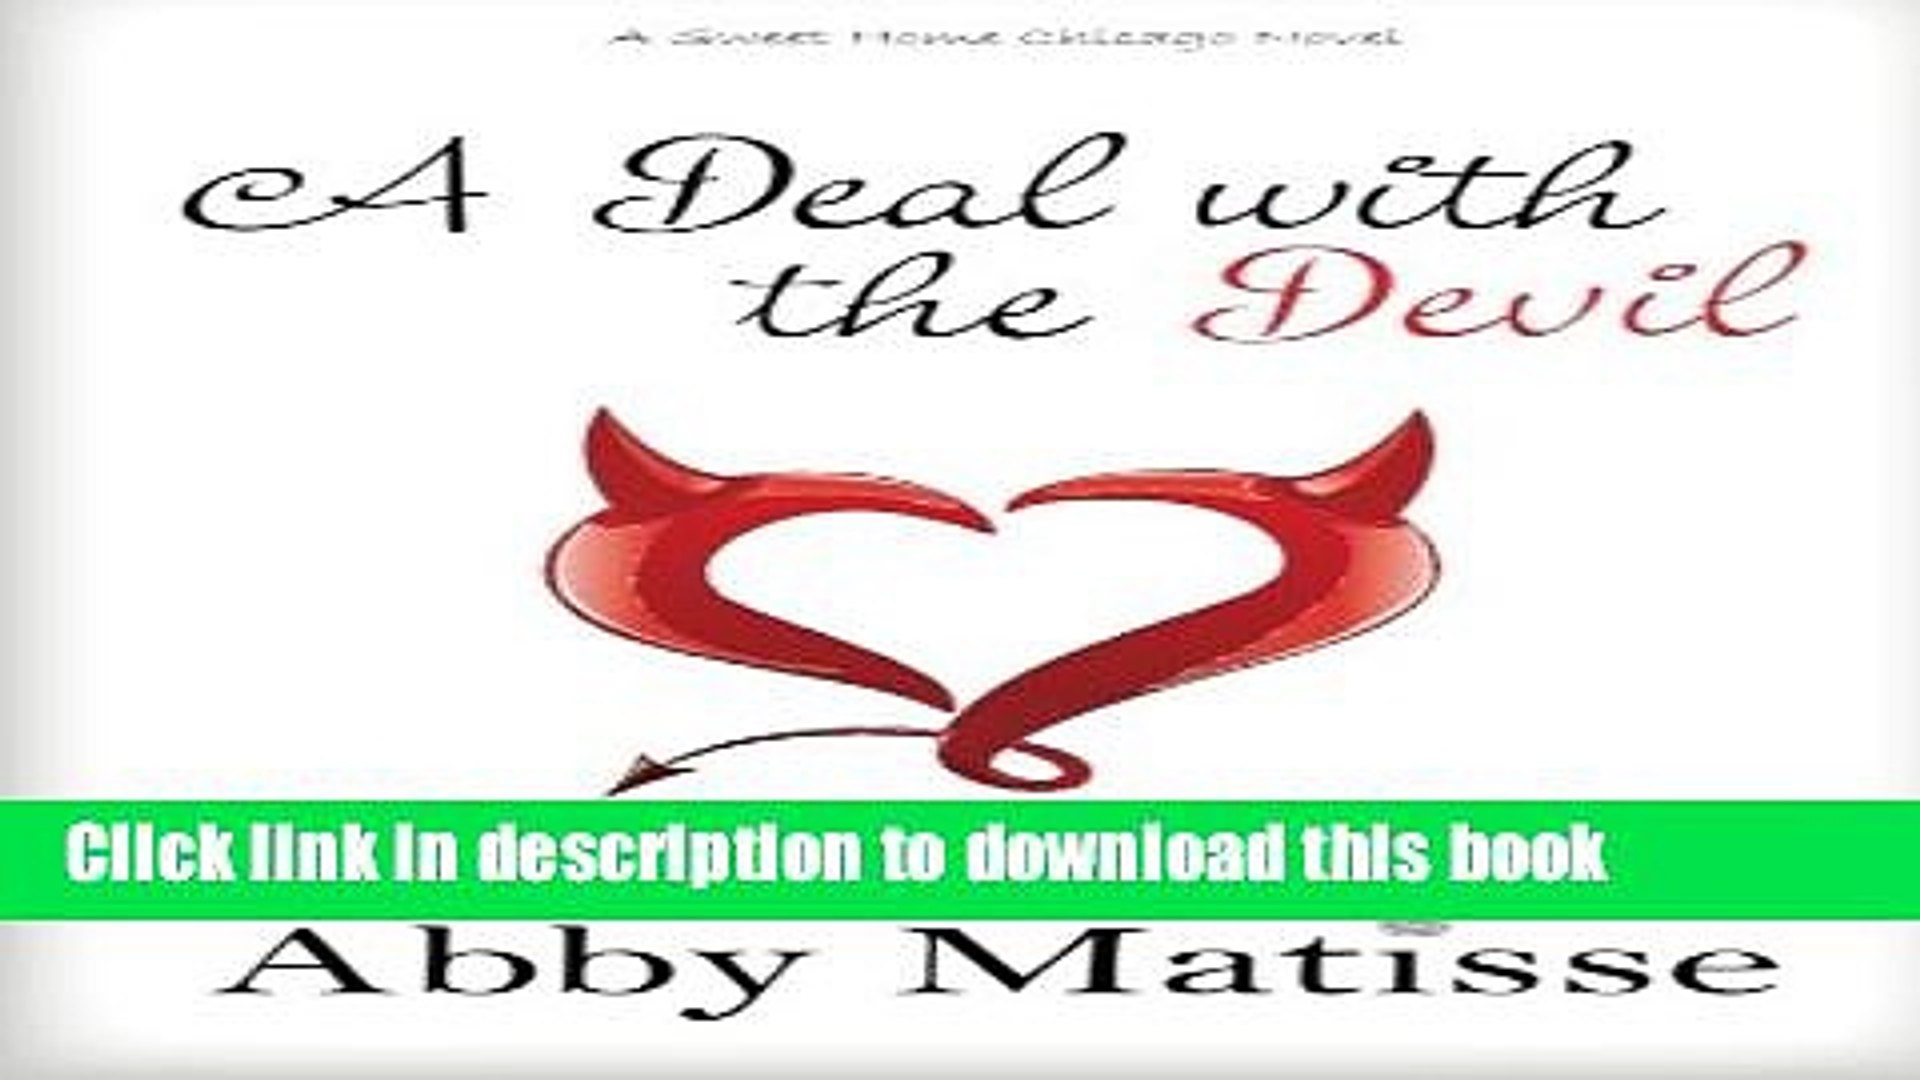 [PDF] A Deal with the Devil Download full E-book